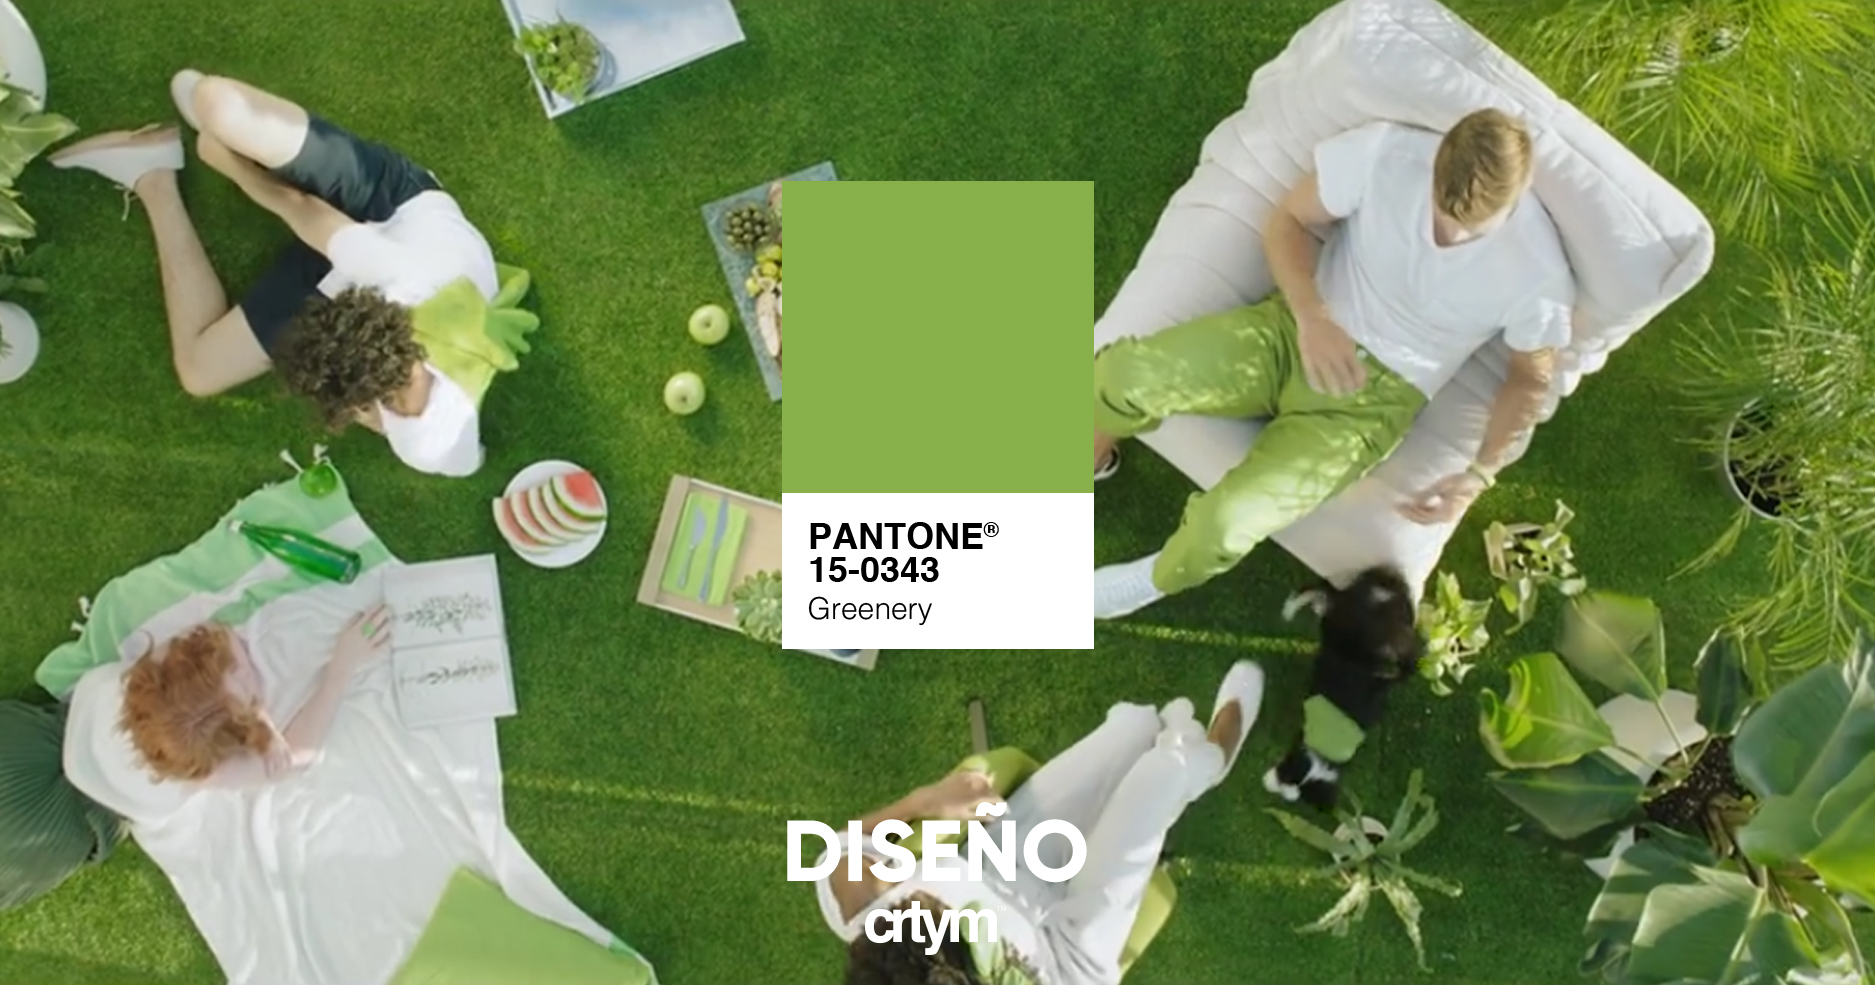 PANTONE: Greenery, color del año 2017